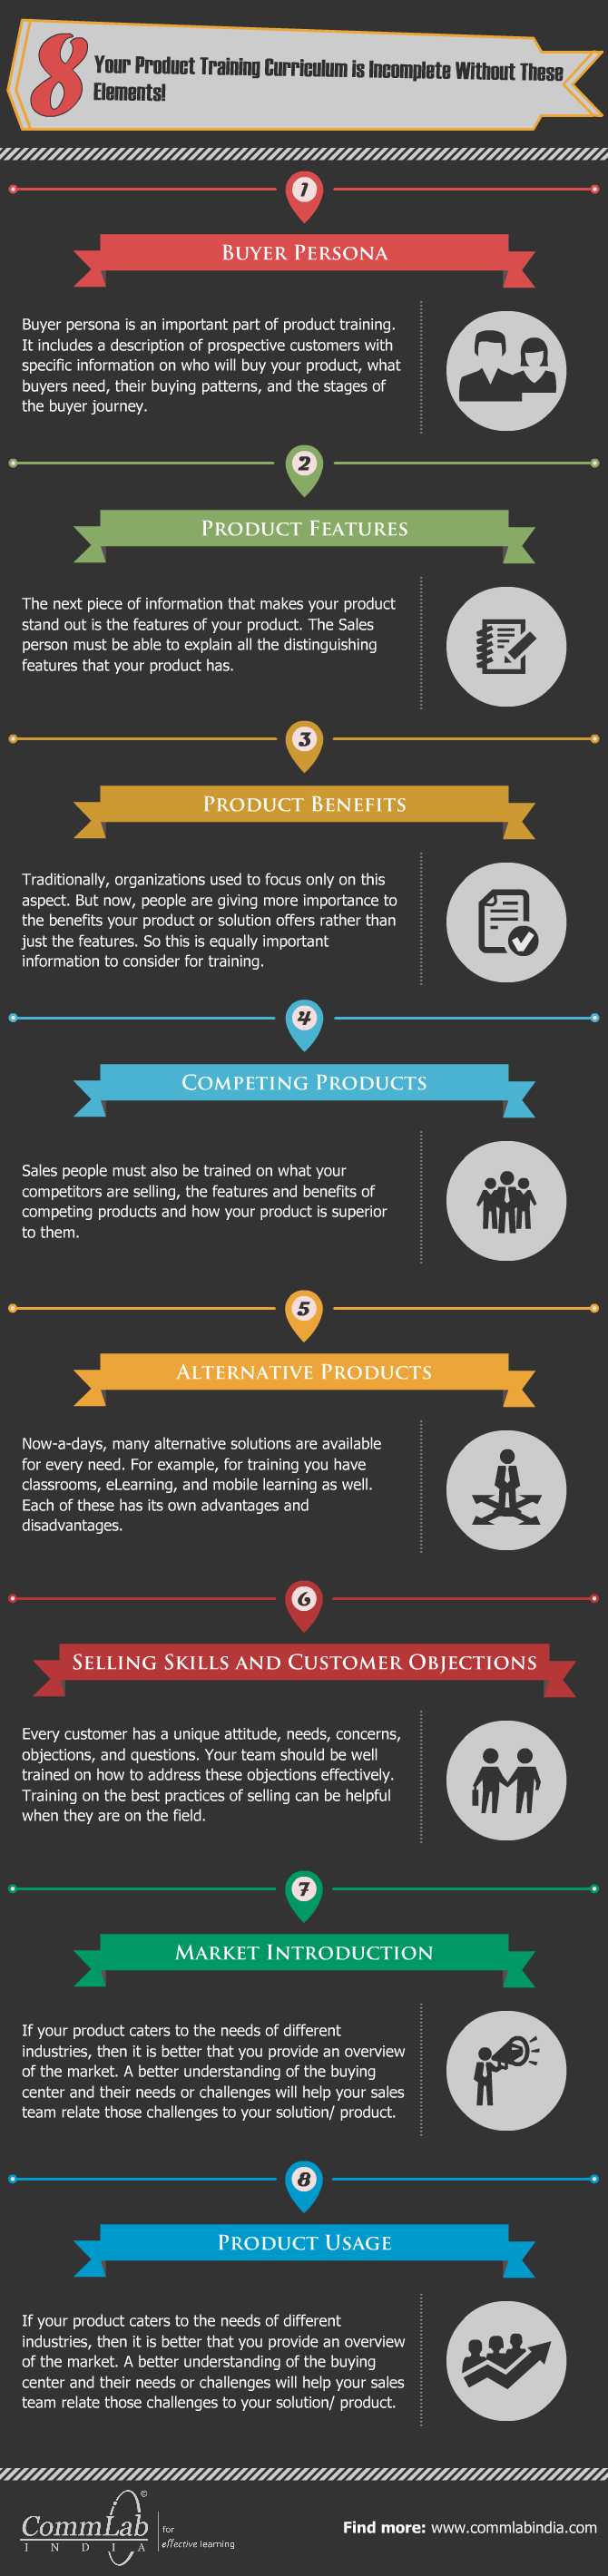 8 Elements Which Should be Included in Your Product Knowledge Training Curriculum [Infographic]